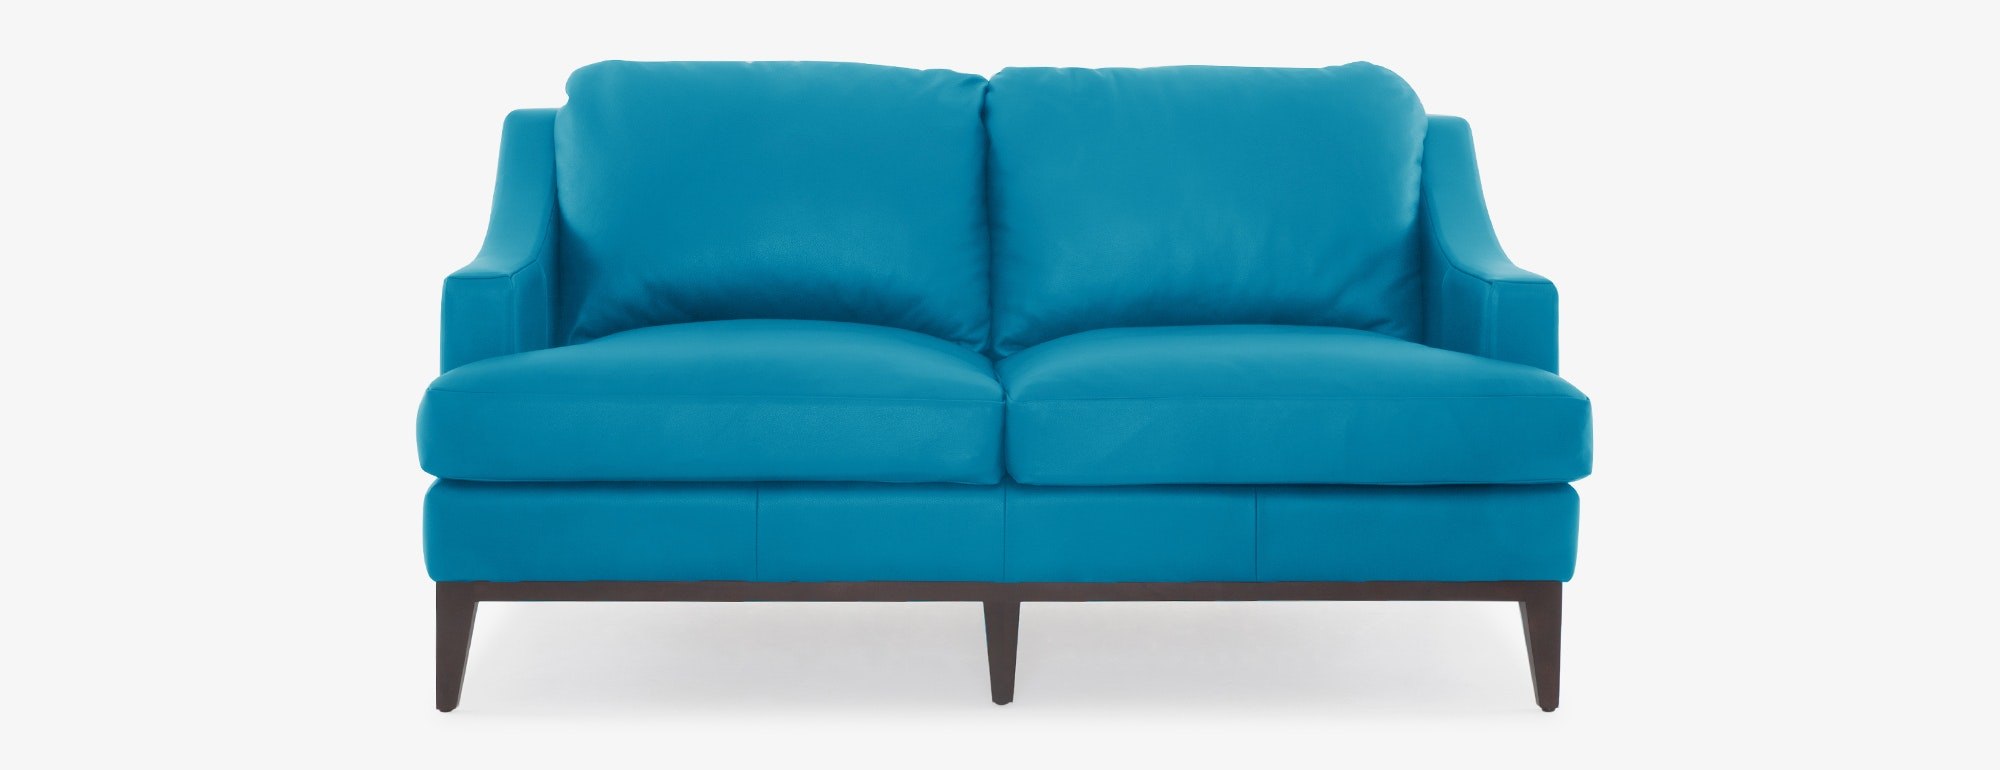 Price Leather Apartment Sofa by Joybrid : hero price leather apartment sofa4 from joybird.com size 2000 x 770 jpeg 396kB